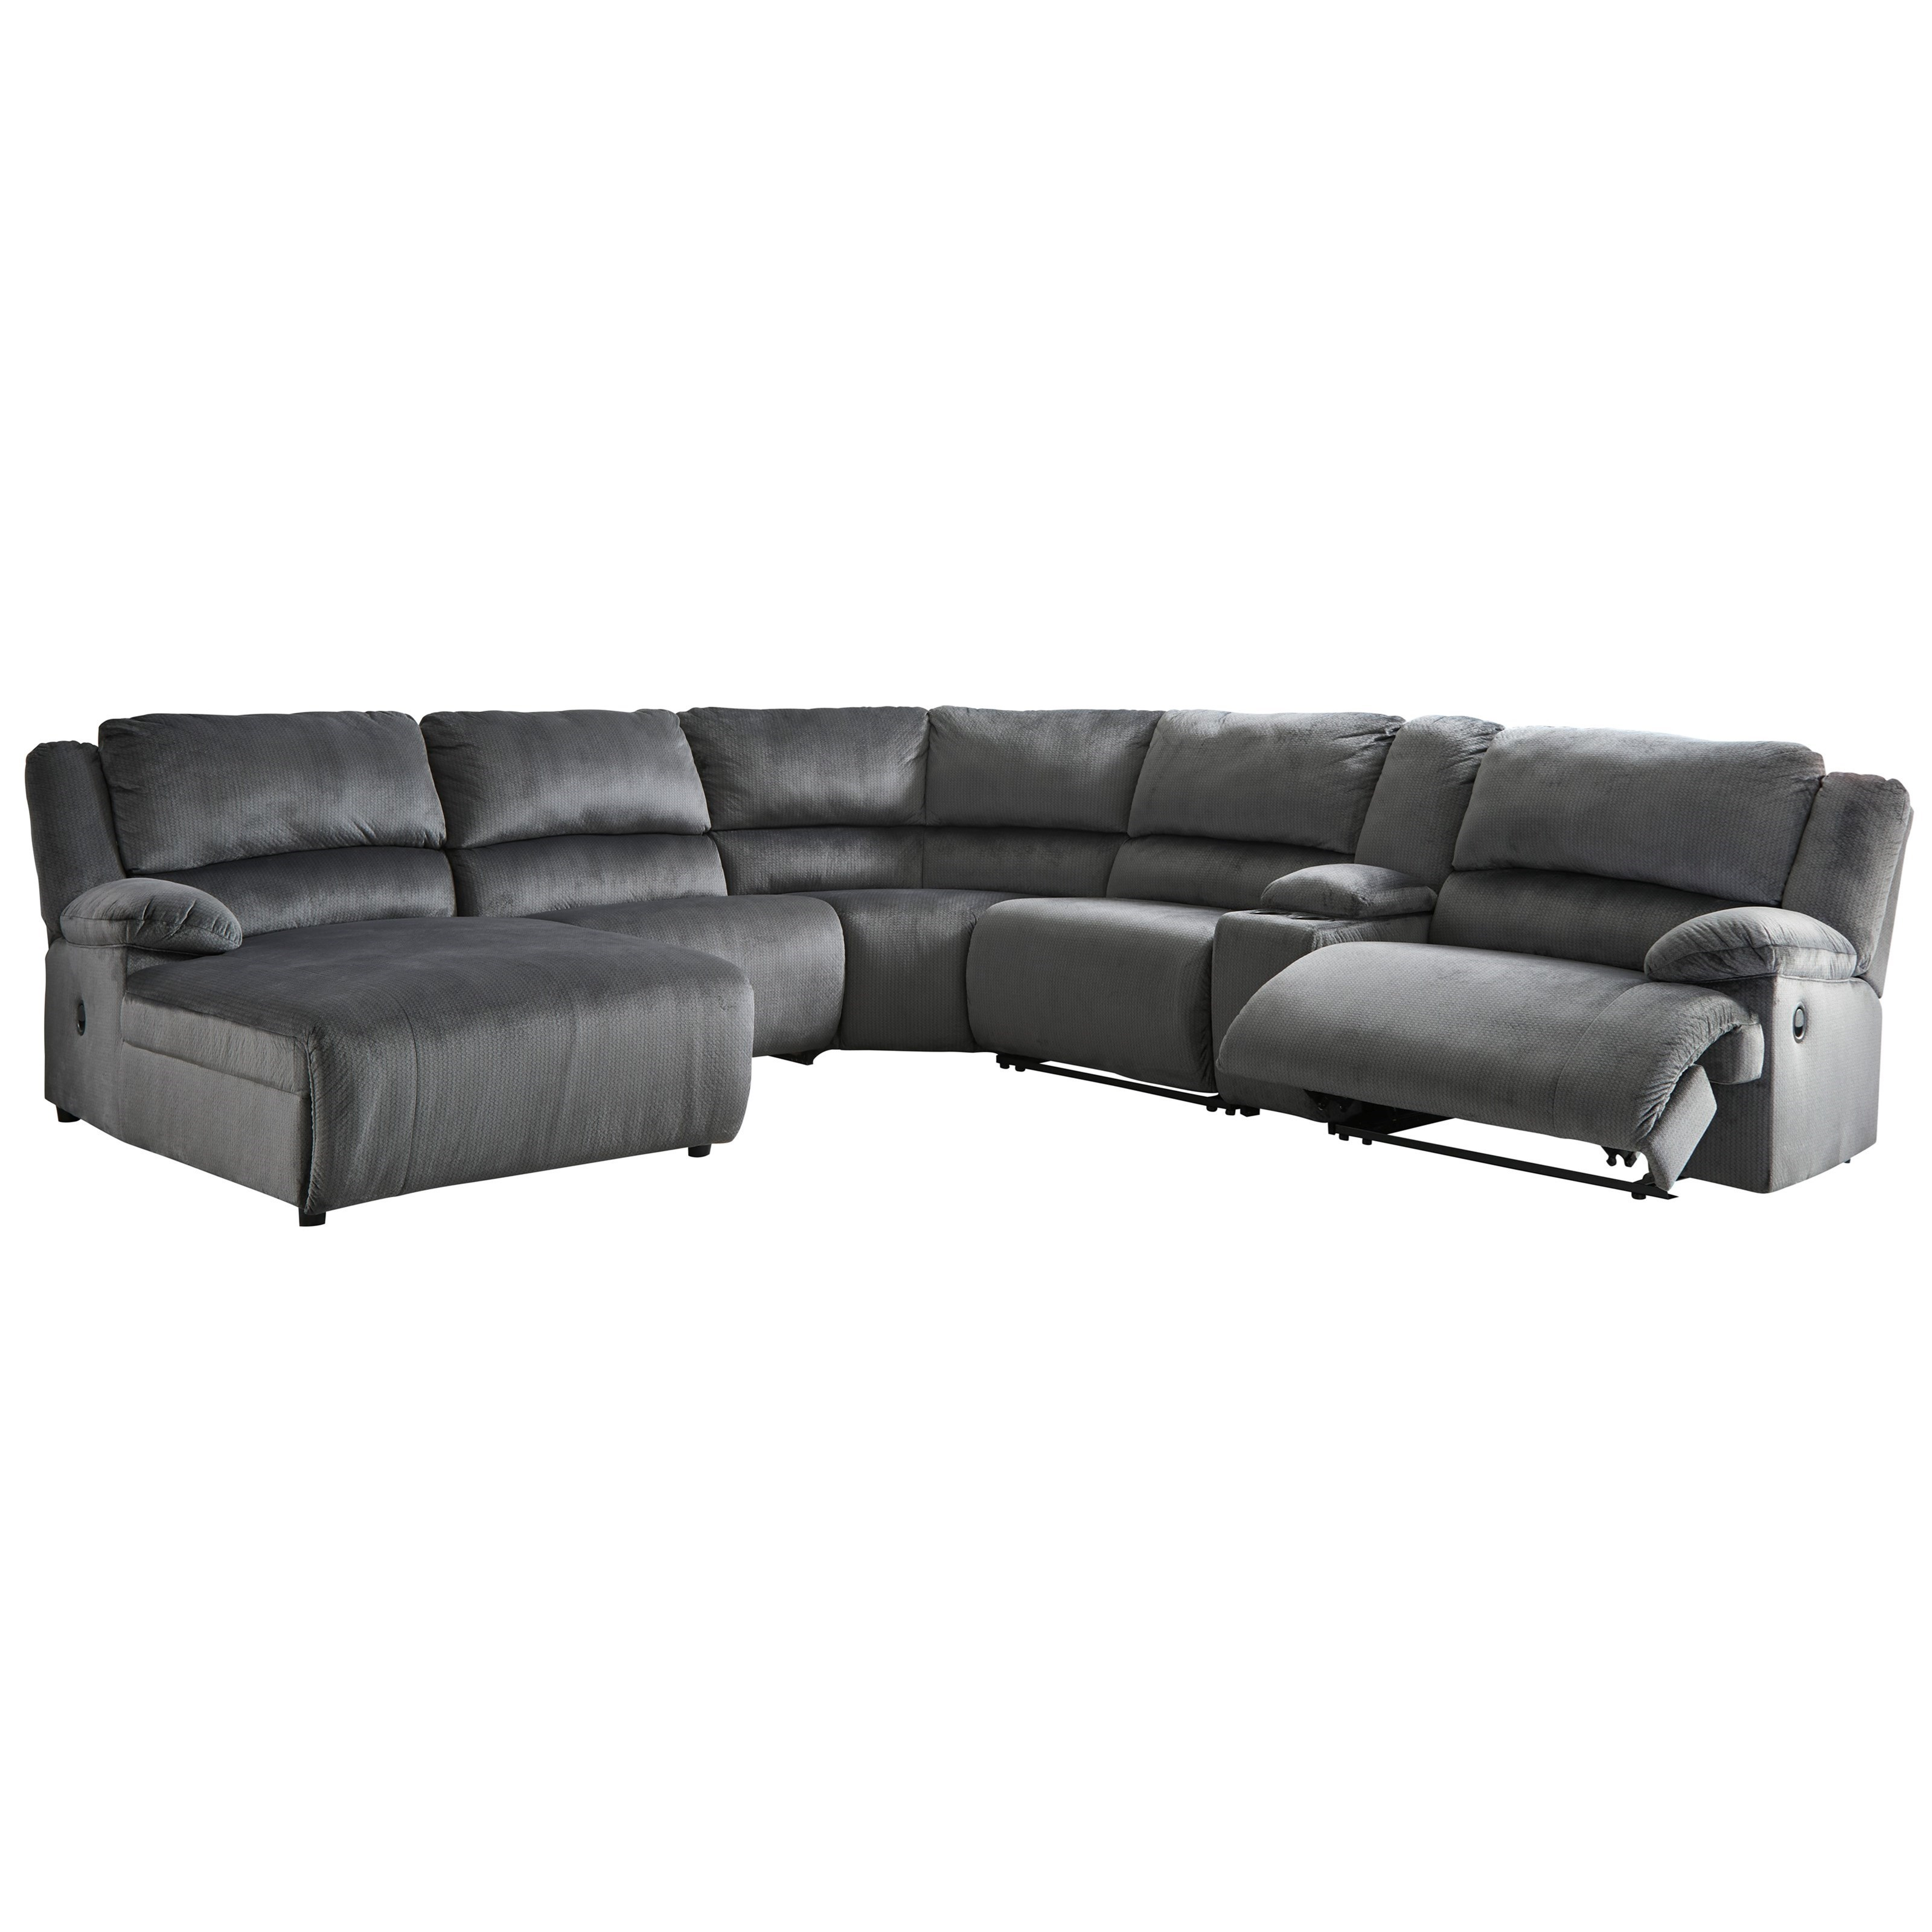 Clonmel Reclining Sectional with Chaise & Console by Ashley (Signature Design) at Johnny Janosik